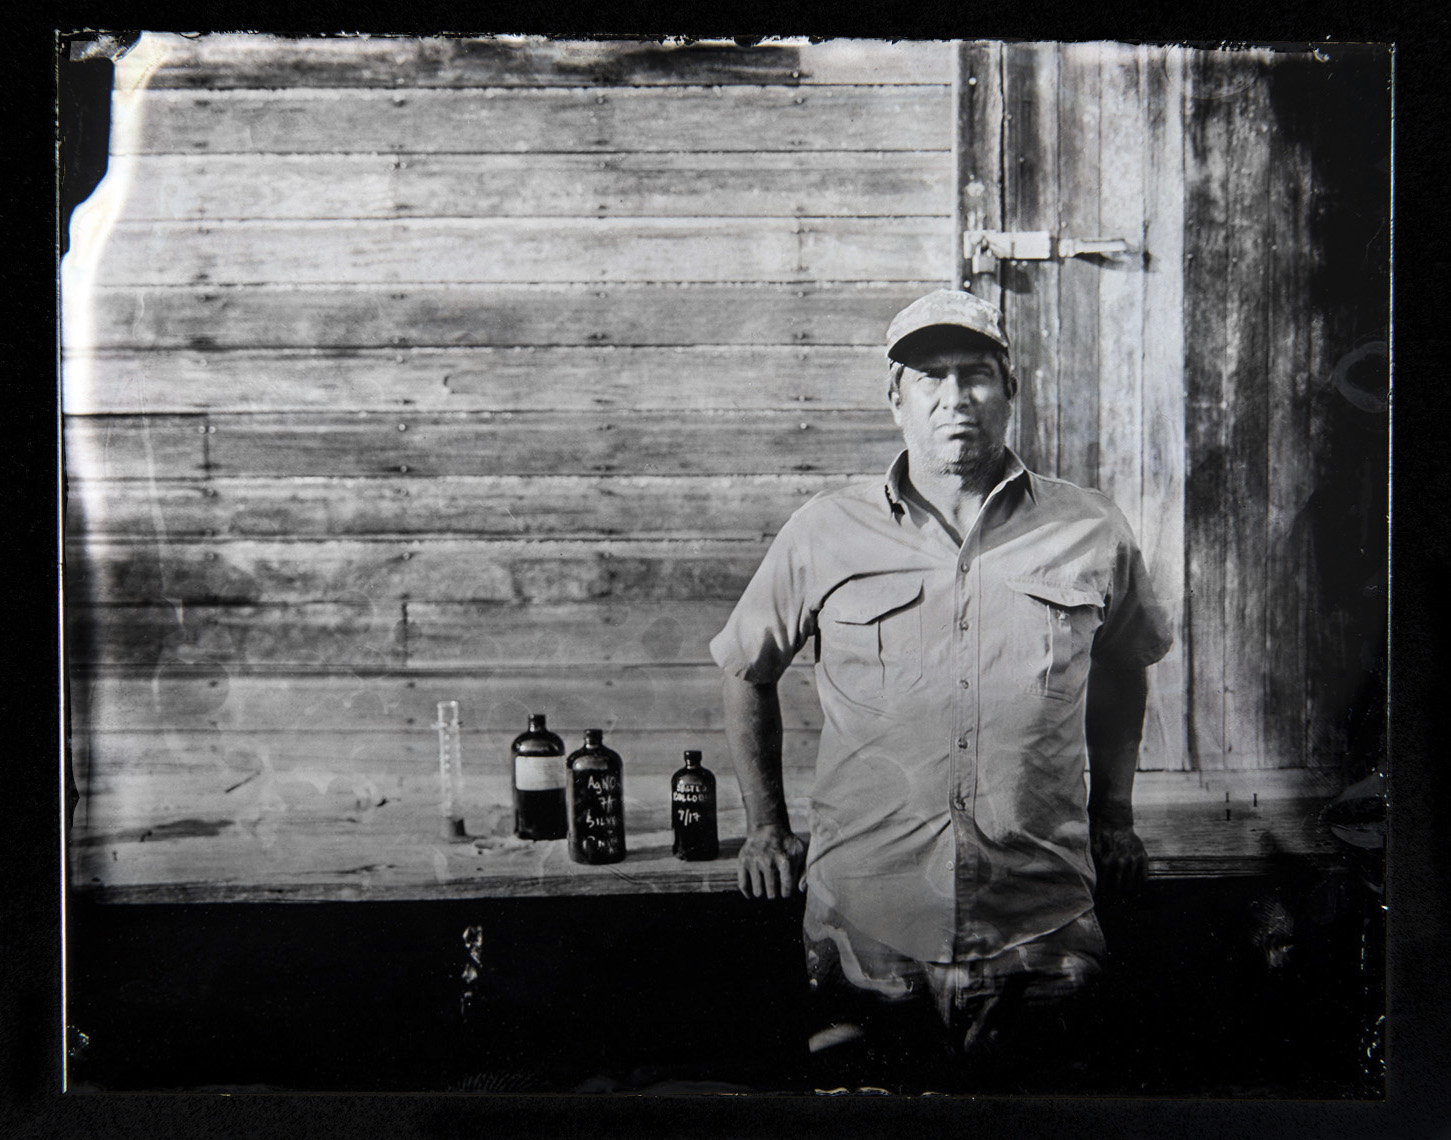 Tom Fowlks    Wet Plate Tintype on Aluminum   Photographer Tom Fowlks photographed here with the wet plate chemistry in Lusk, Wyoming.